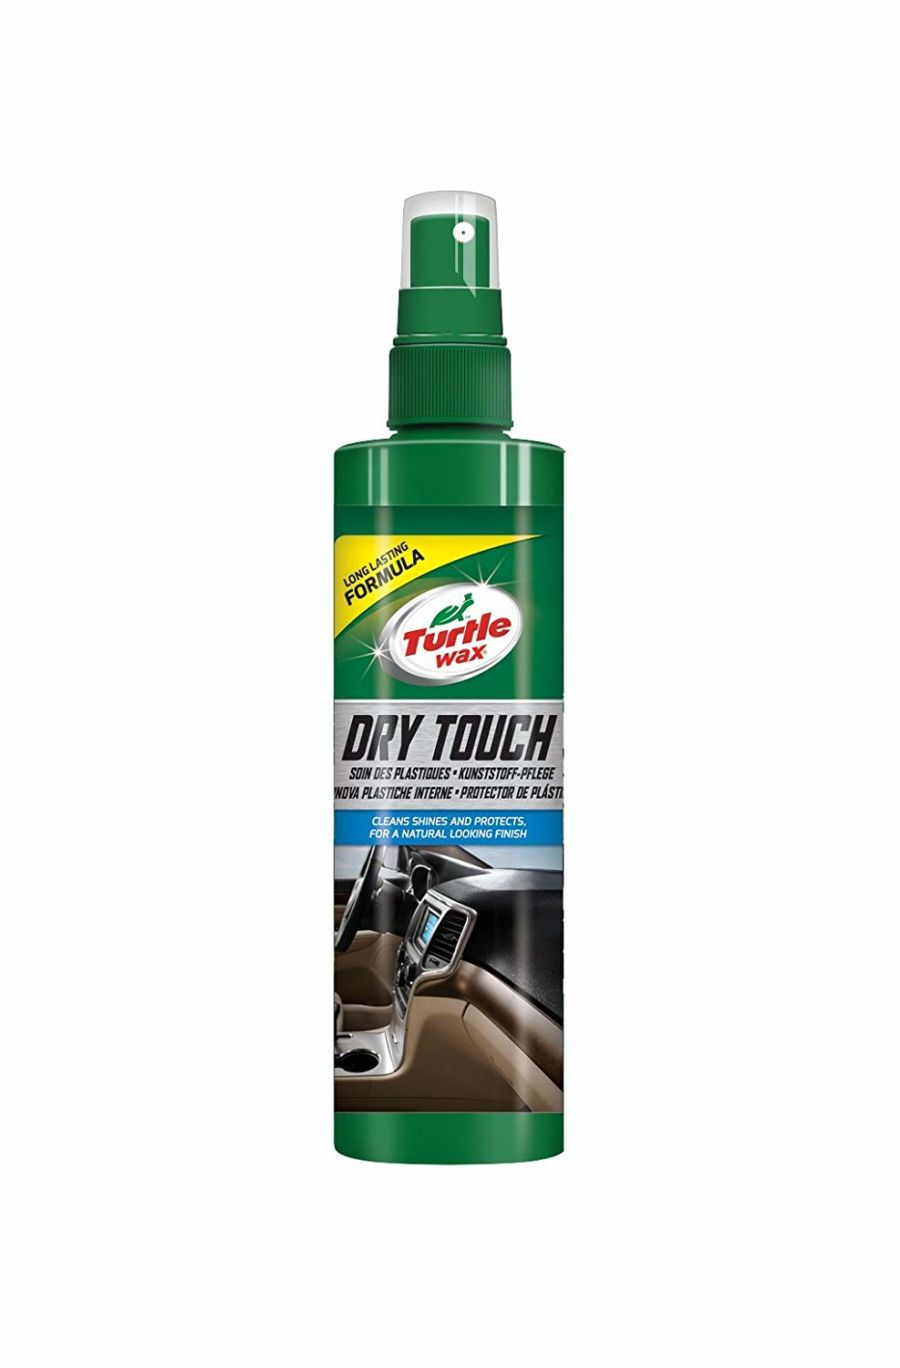 Dry Touch Interior Plastics Restores, Shines & Protects 300ml